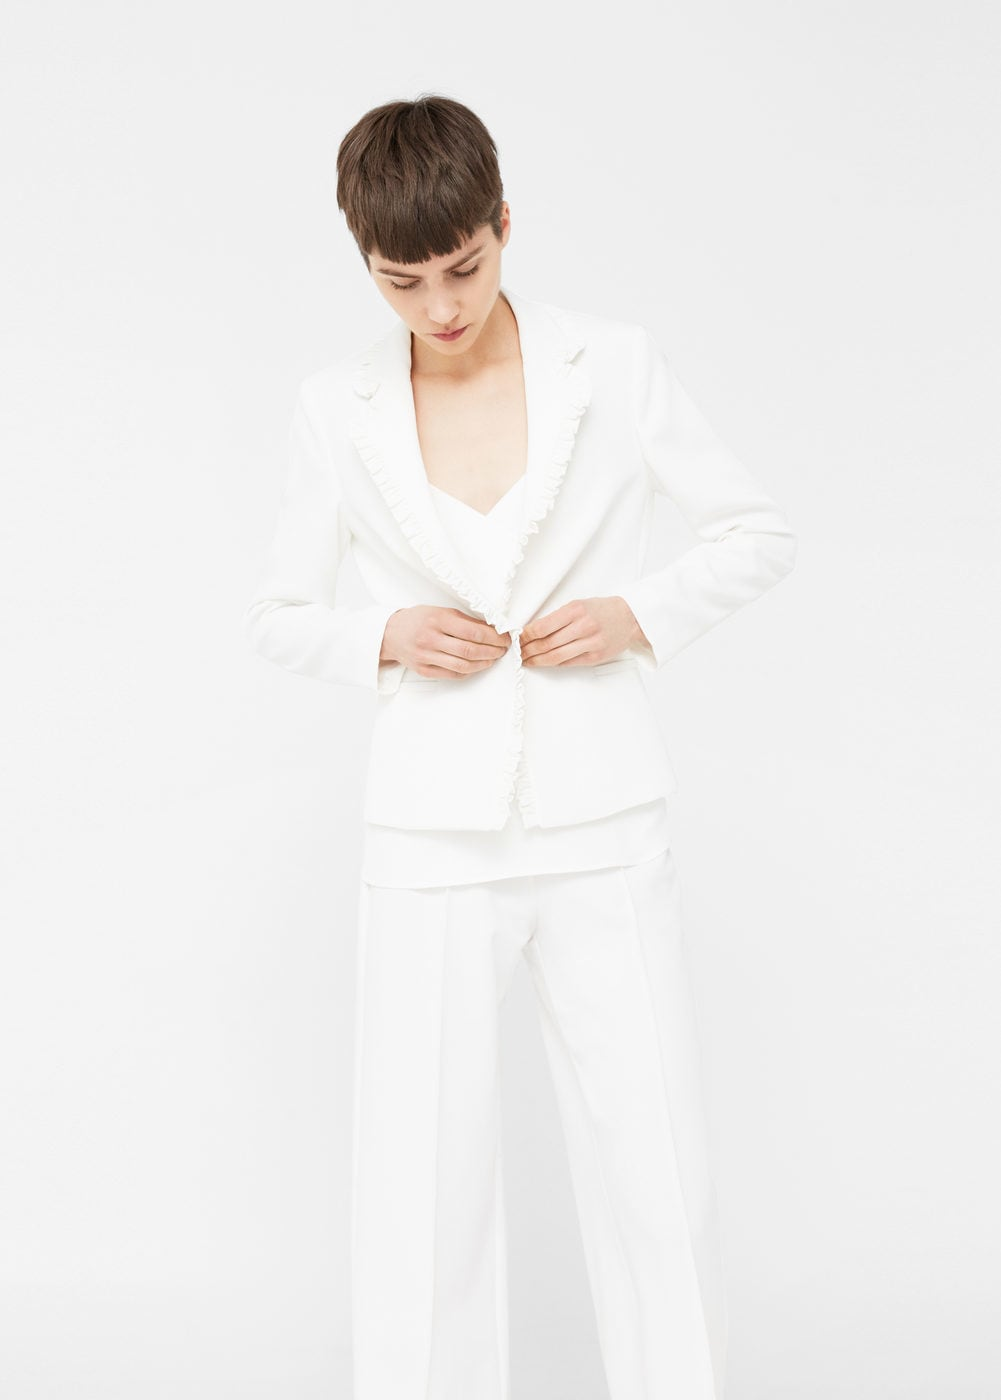 mango structure ruffle blazer - office fashion -  how to build rapport